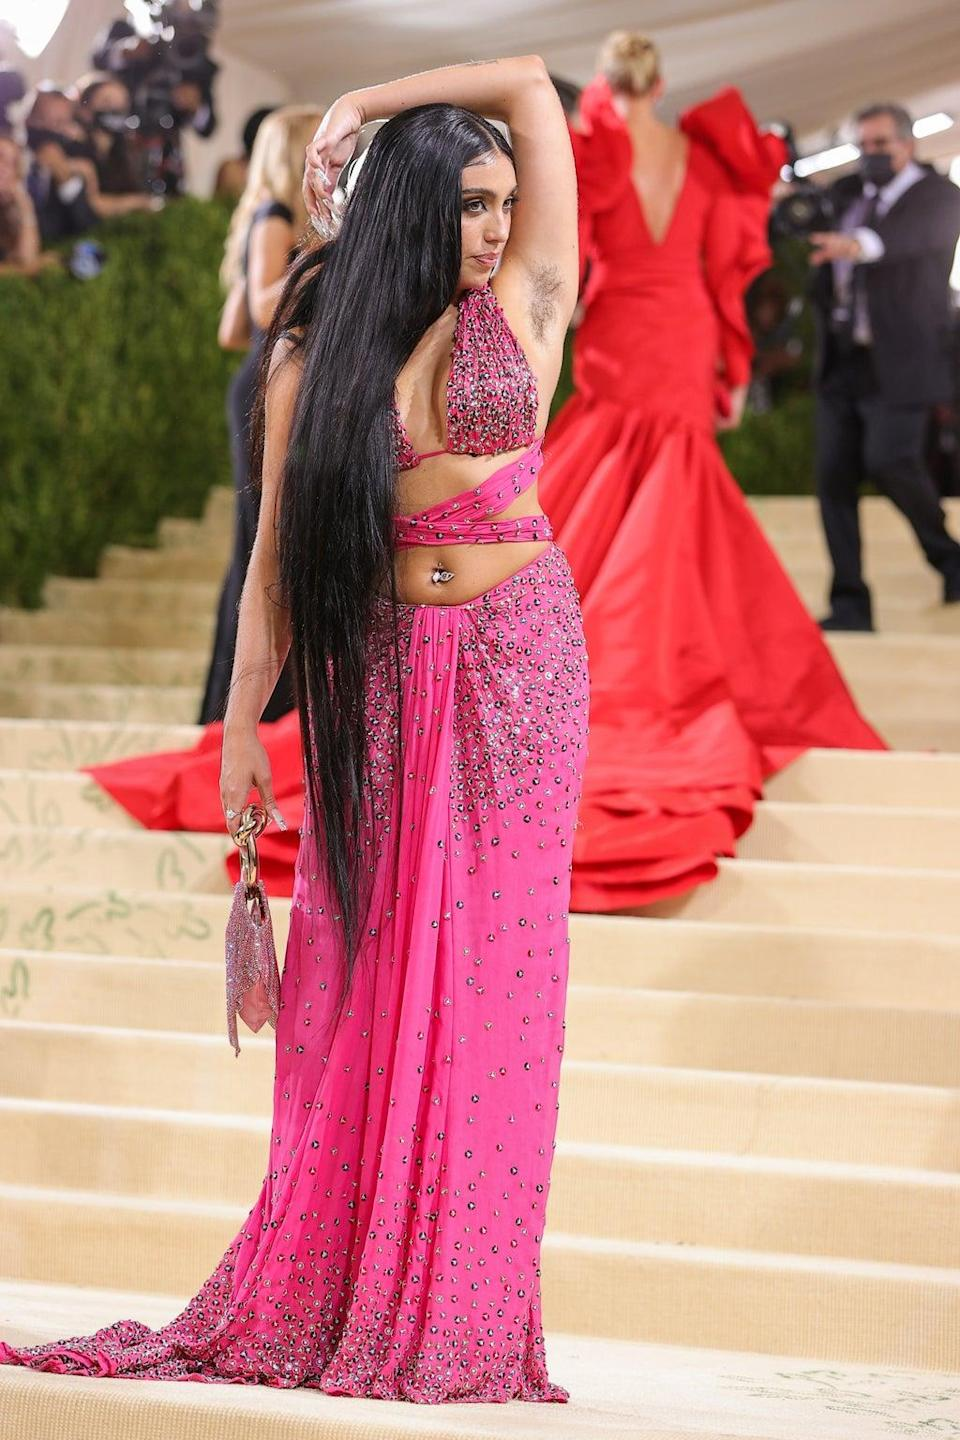 Lourdes Leon at the 2021 Met Gala (Getty Images)